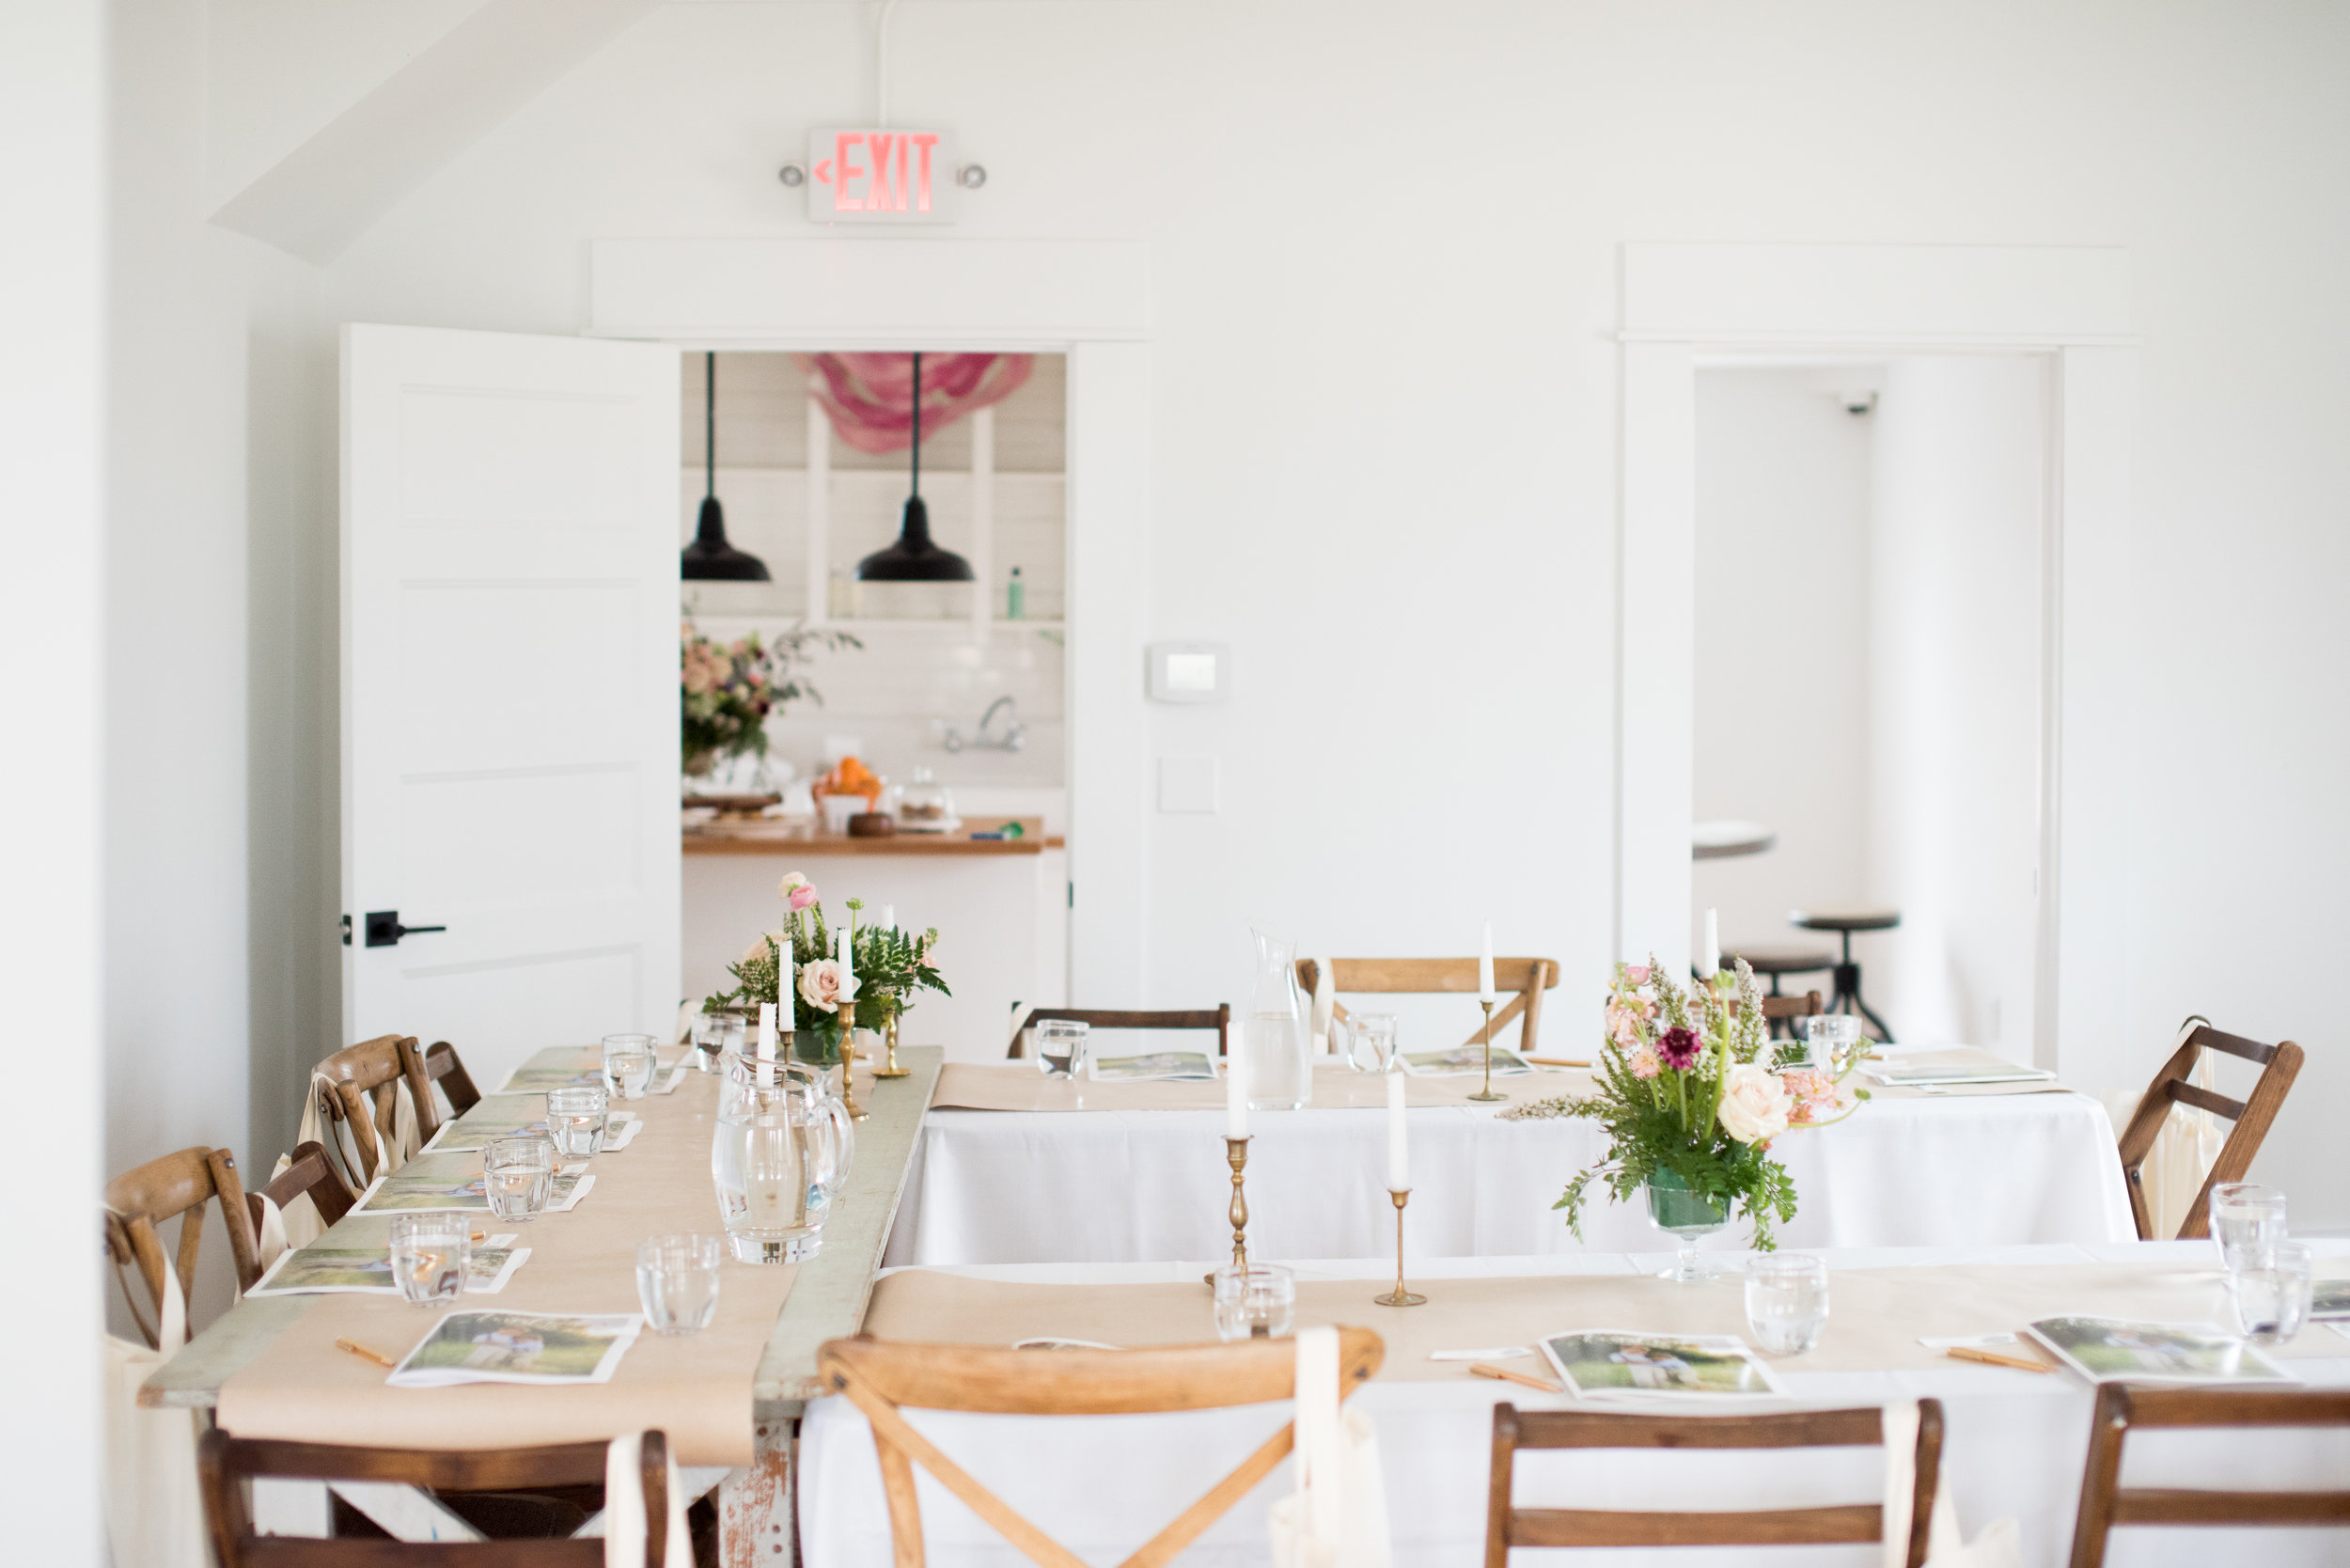 Kindred Photography Workshop styling by  Cortney McClure  , Florals by  Bloom House , Photo by  Kacey Gilpin